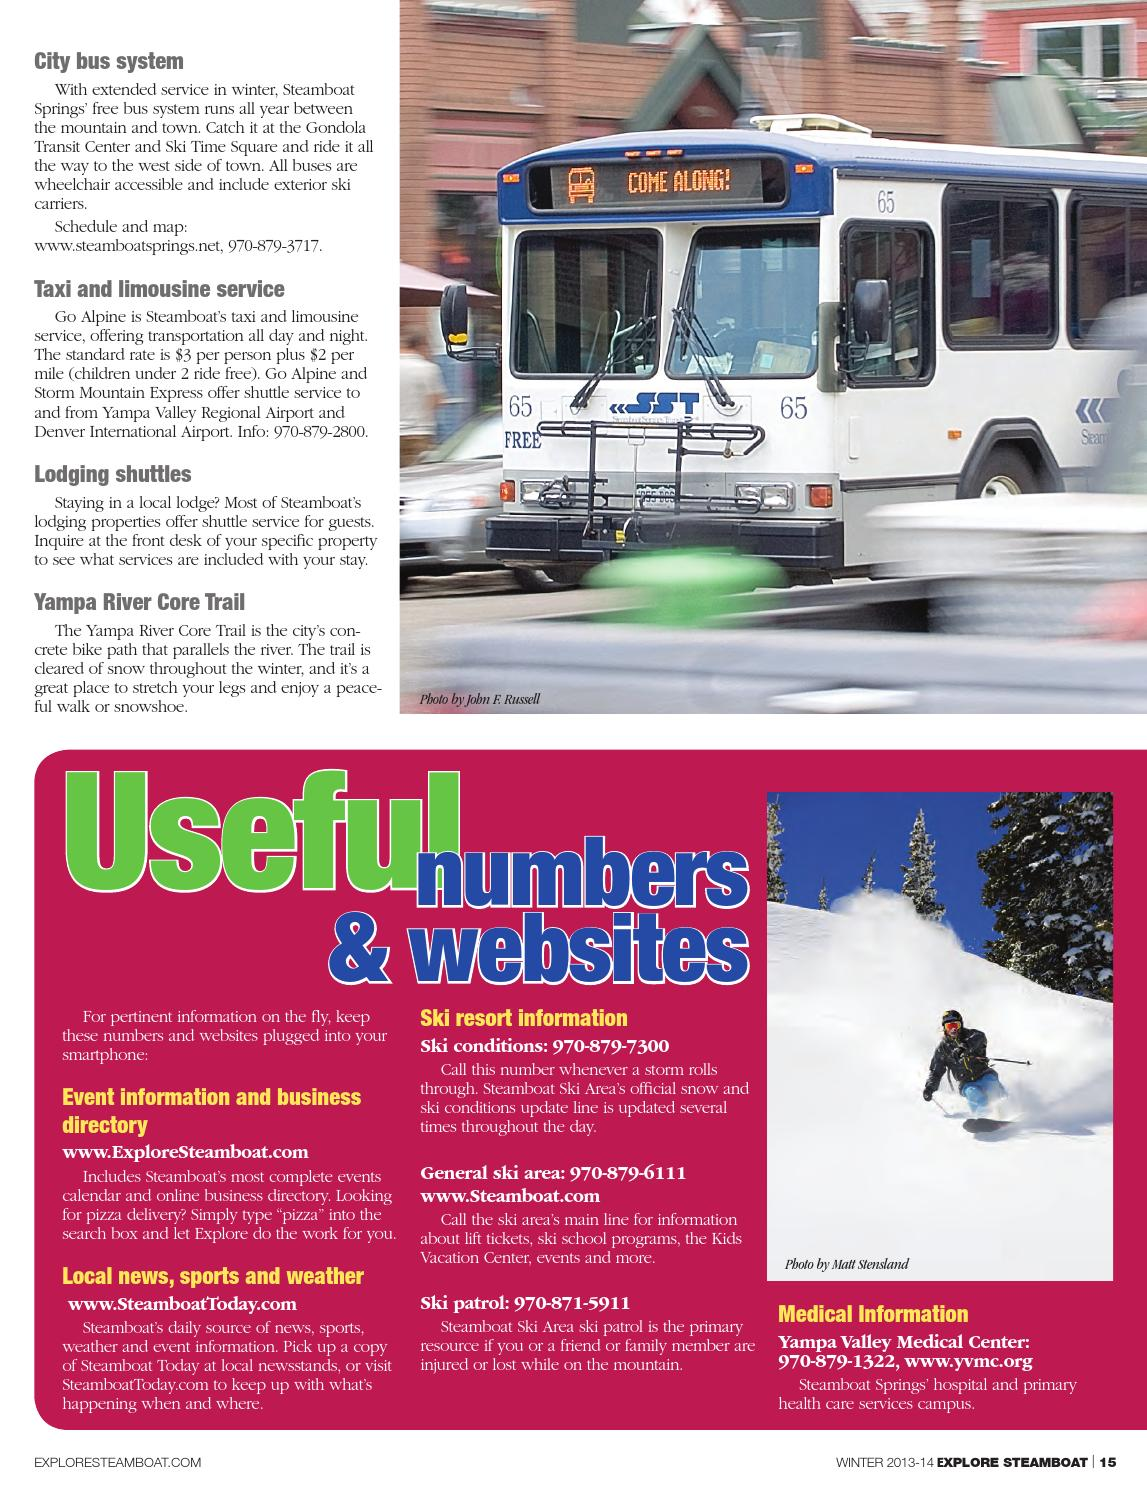 explore steamboat winter 2013 14 by steamboat pilot today issuu issuu